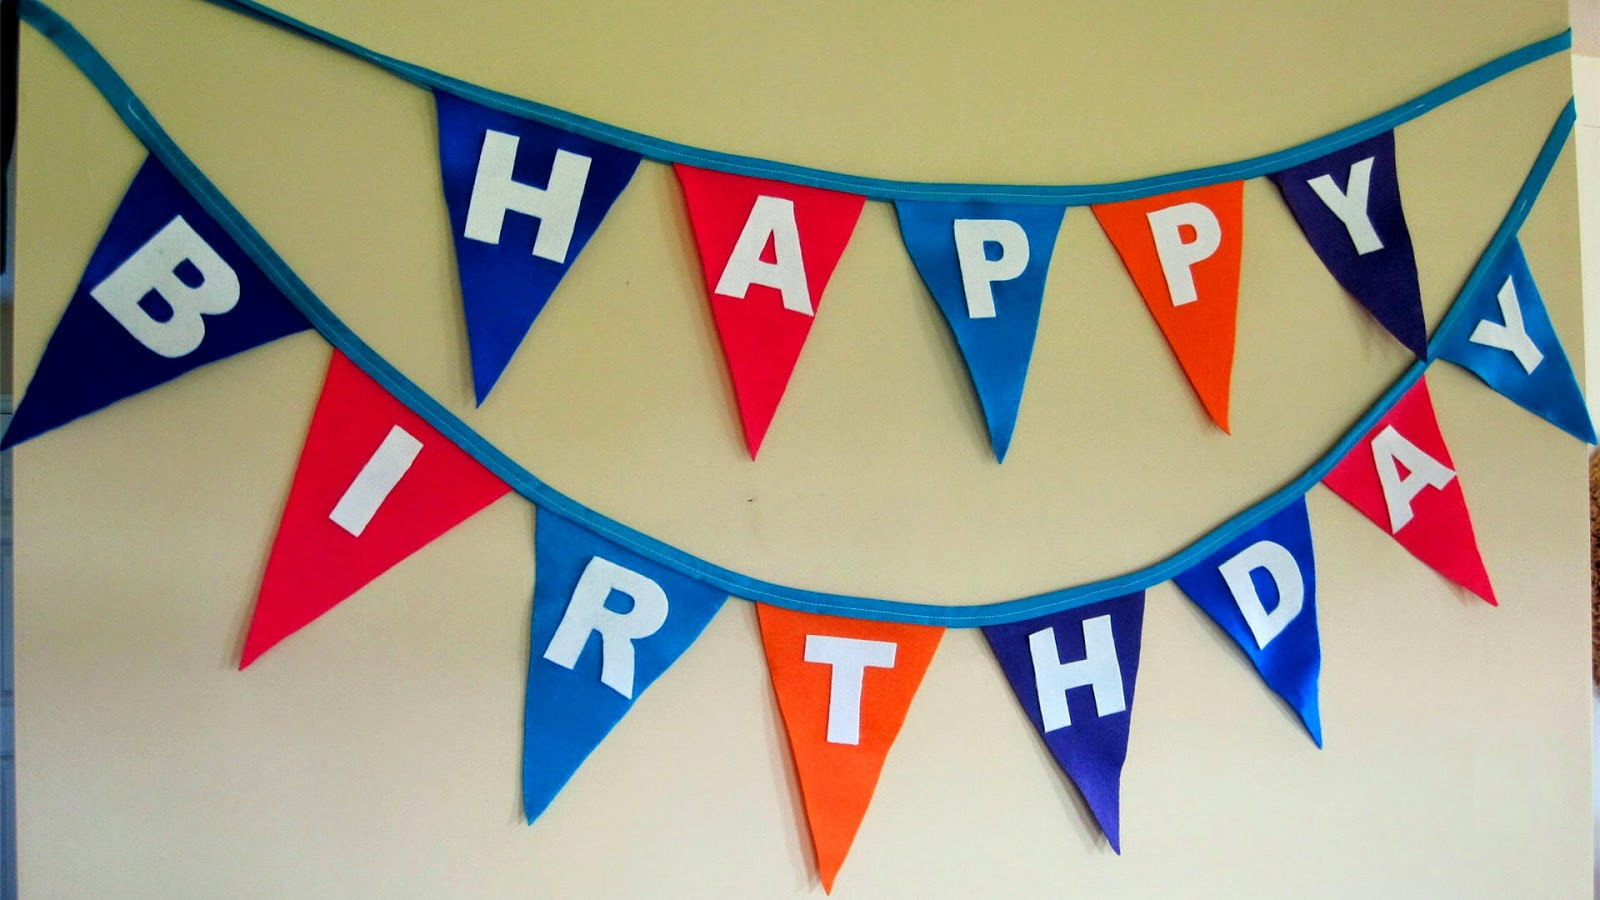 happy birthday wishes in a festoons